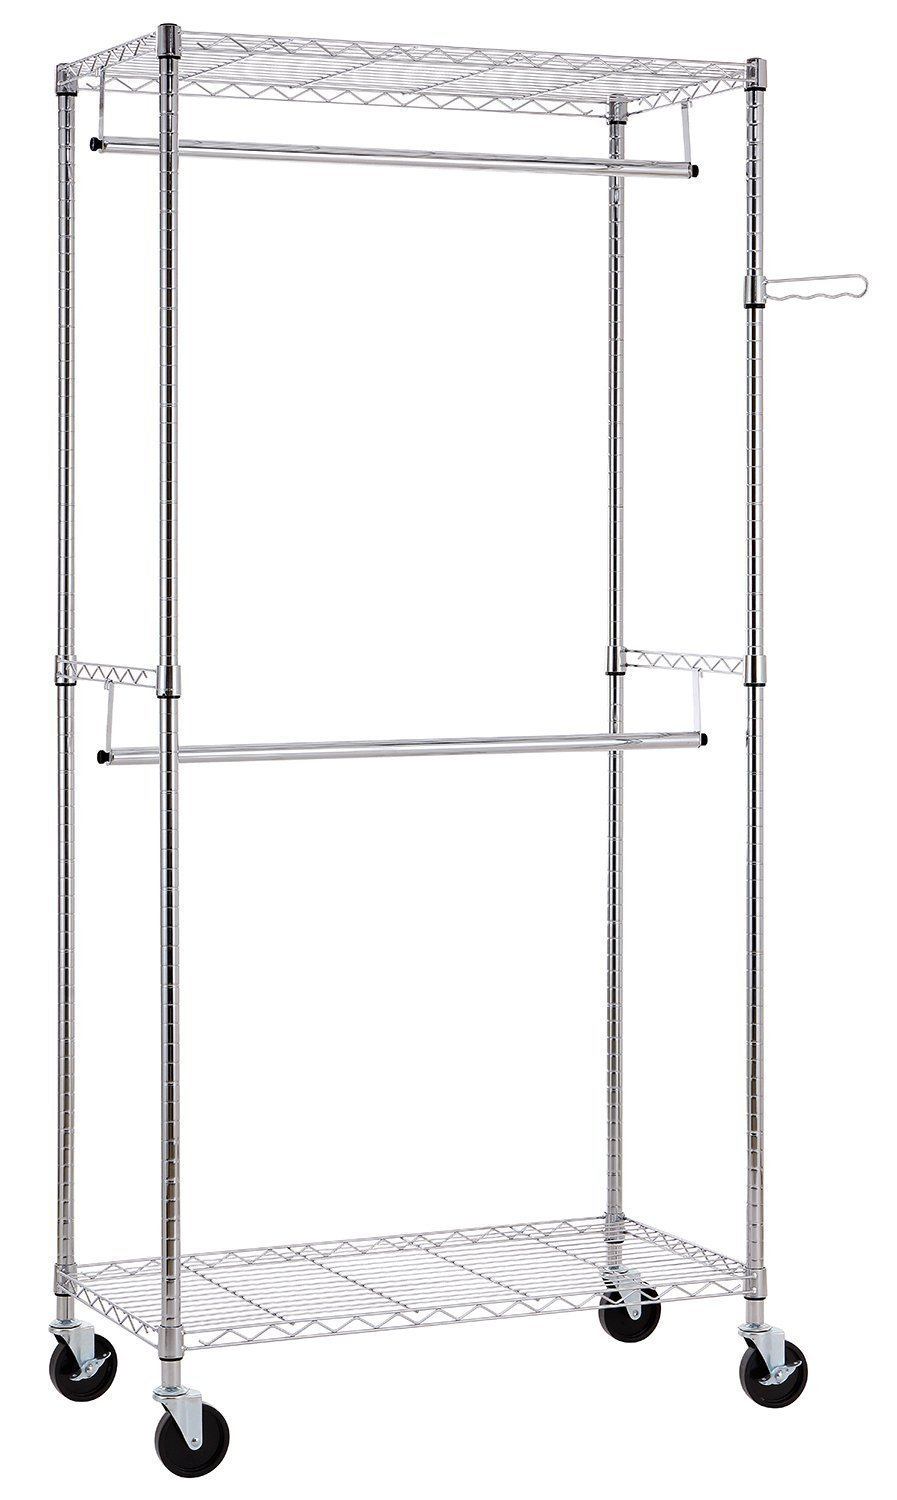 Finnhomy Heavy Duty Rolling Garment Rack Clothes Rack with Double Hanger Rods